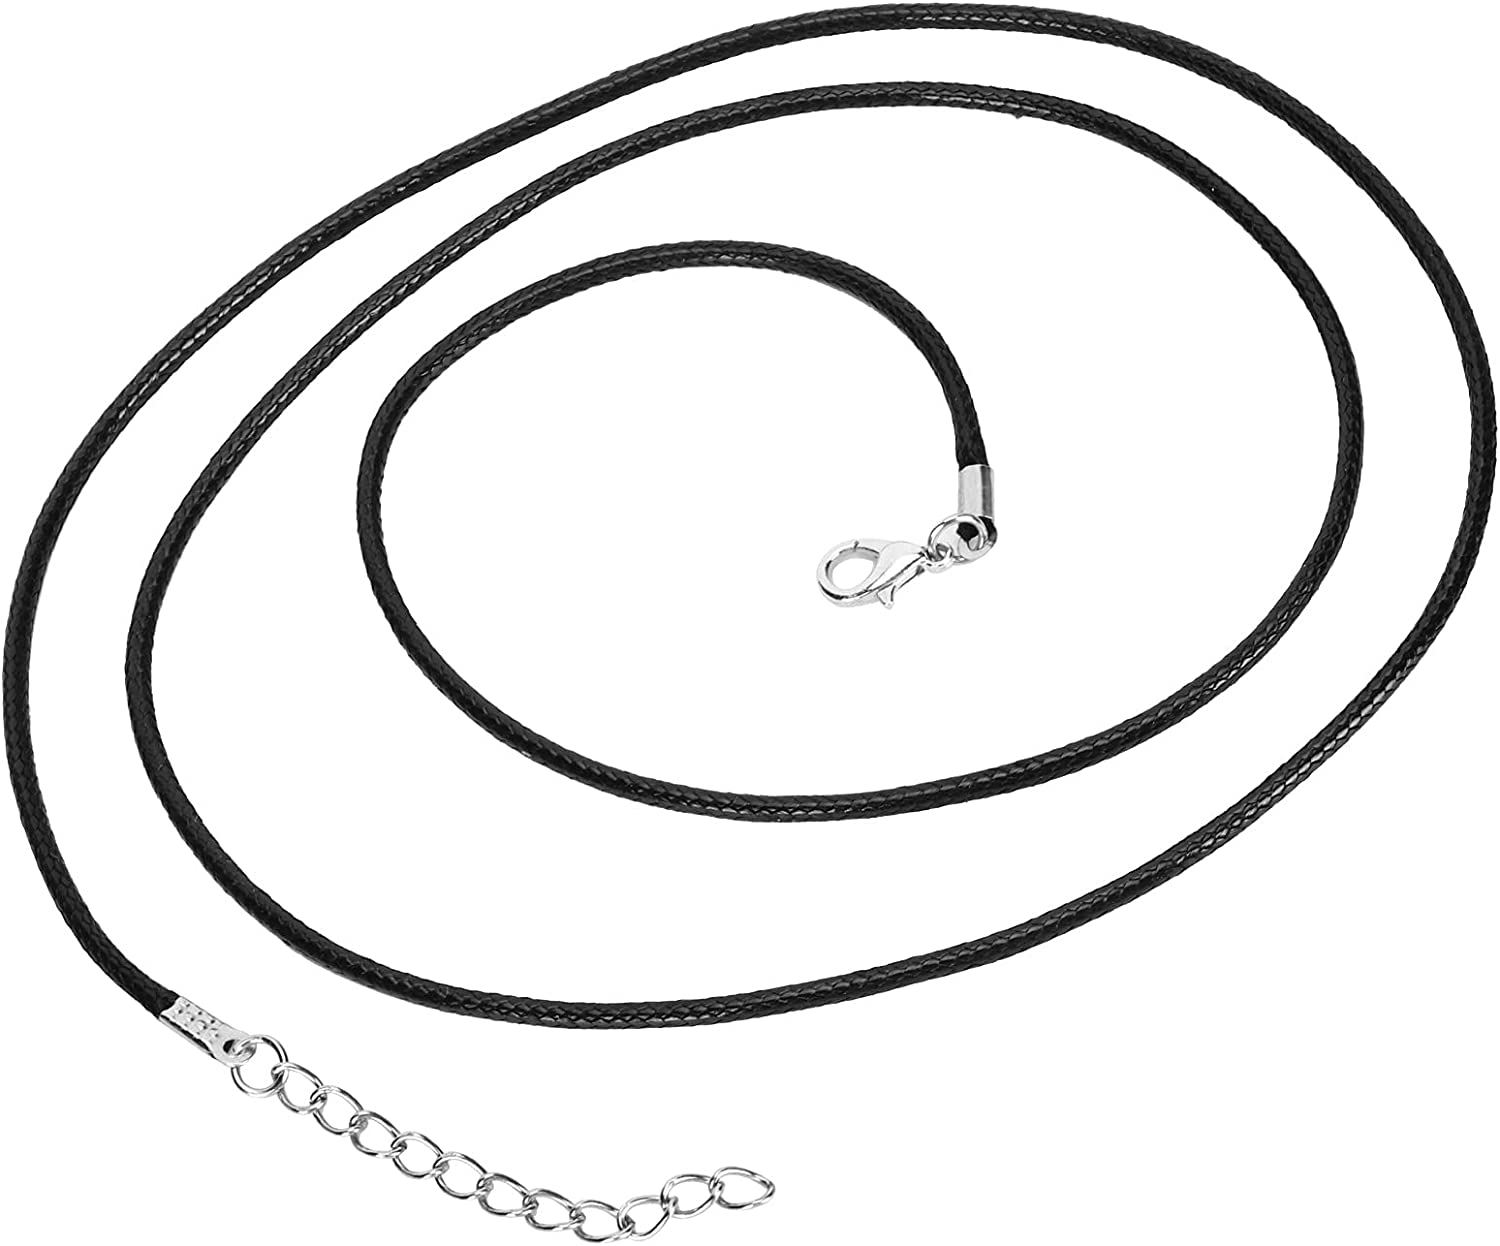 36cm Max 65% OFF 14.2in Special sale item Exercising String Hanging Necklace Nylo Rope Lanyard